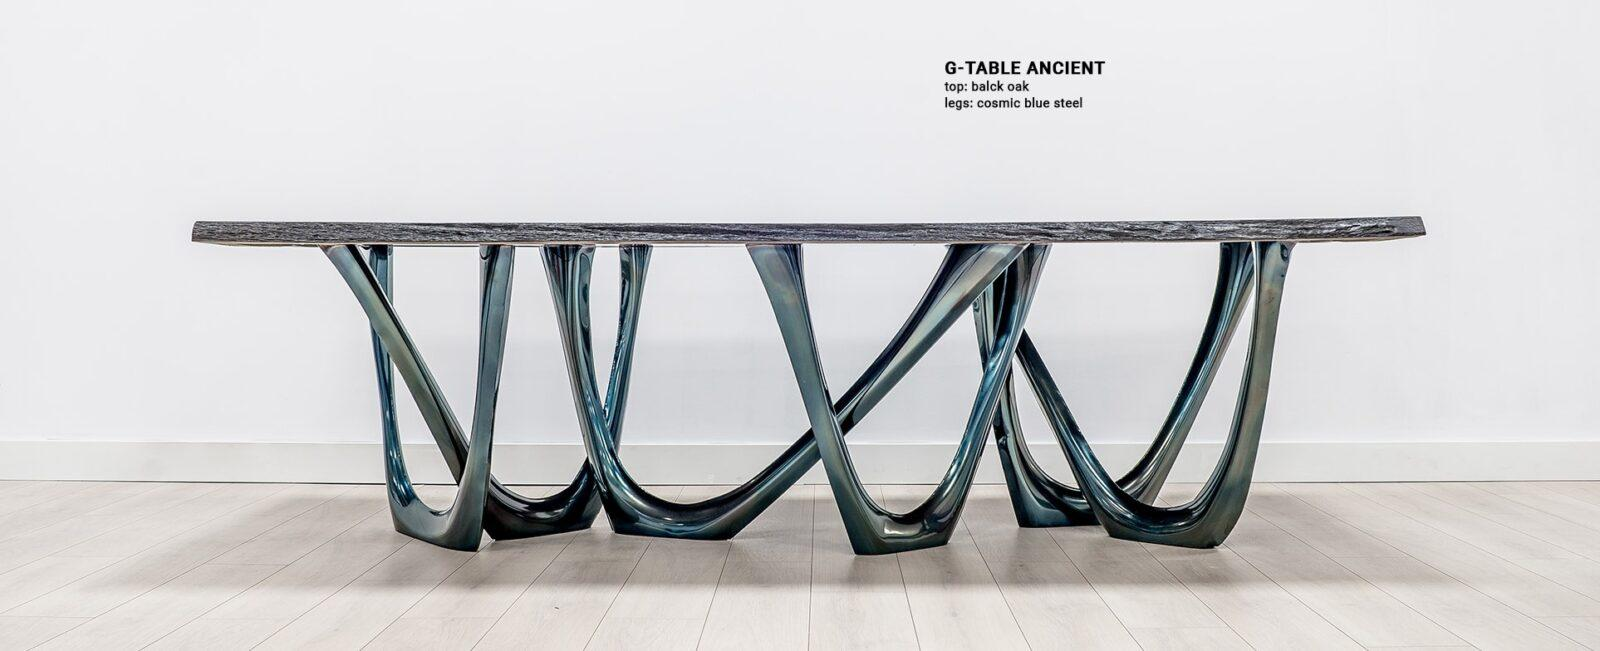 g-table ancient